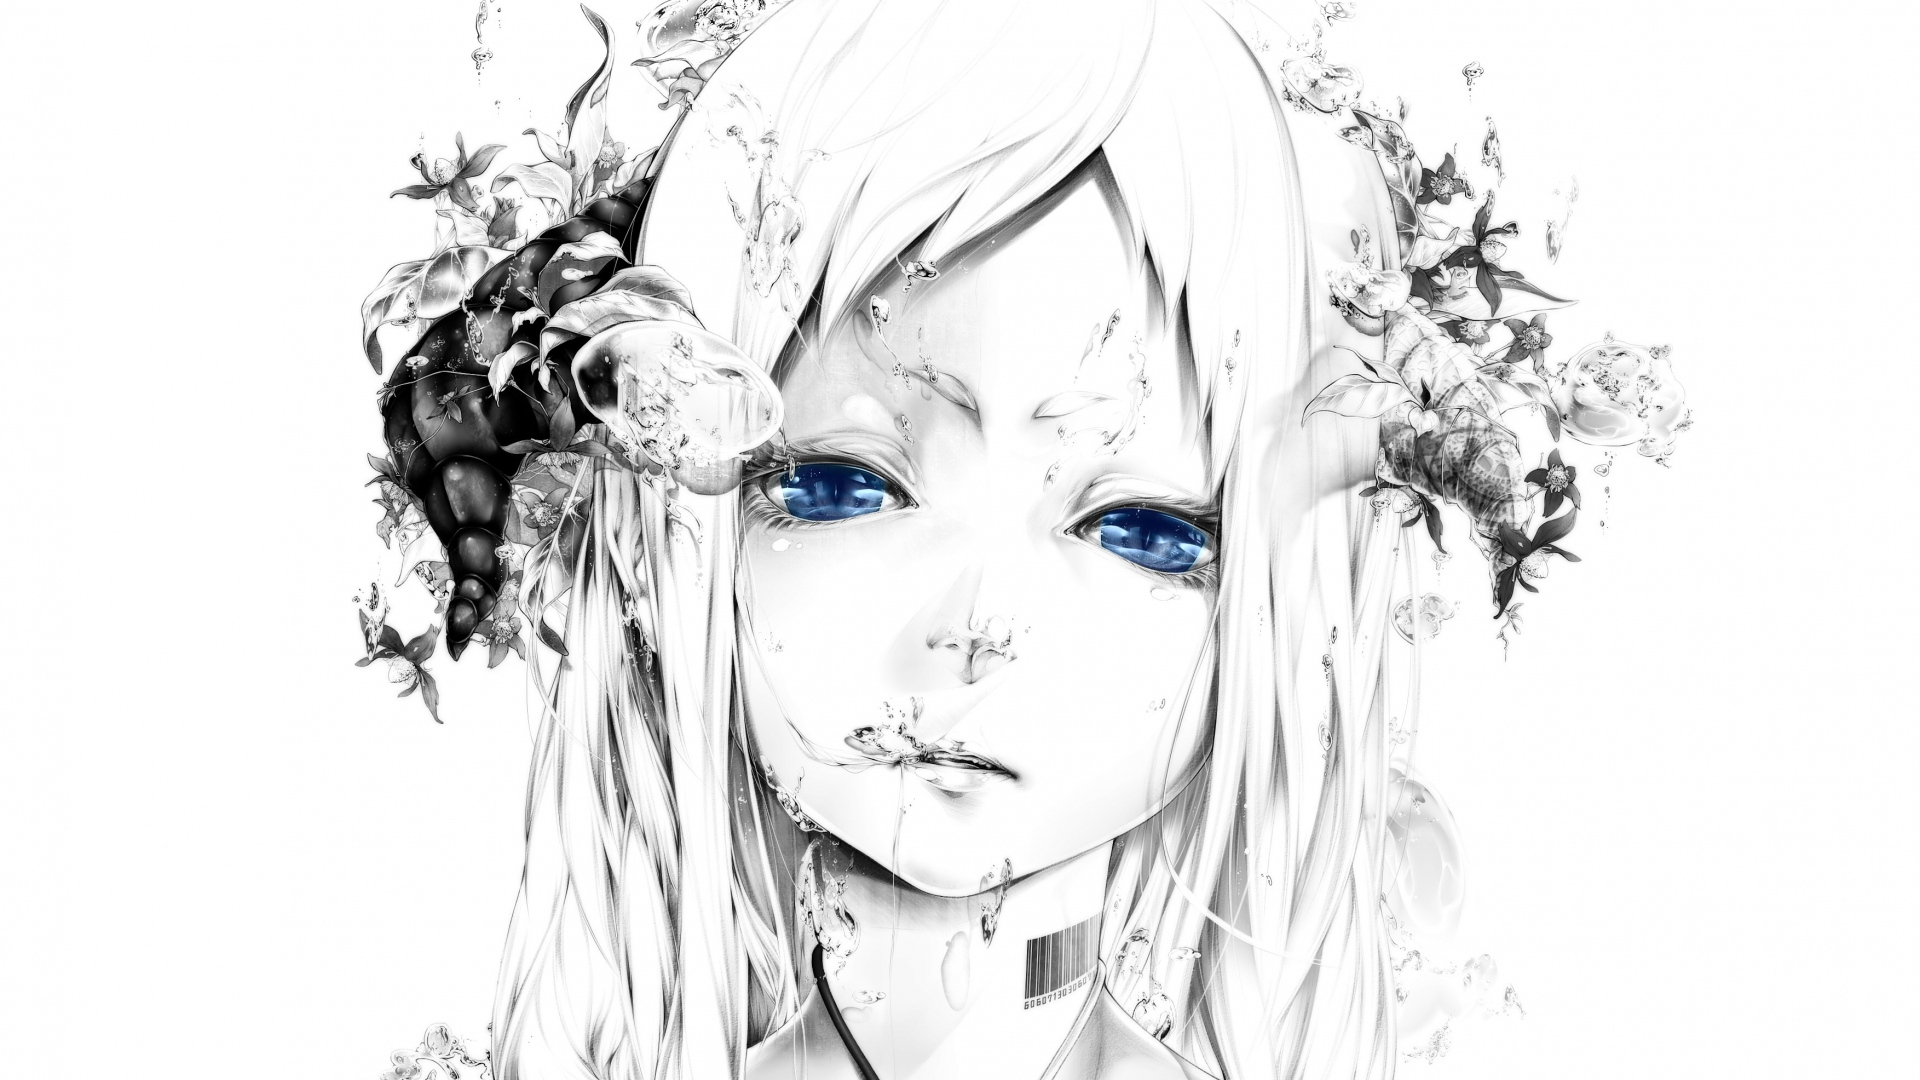 1920x1080-art-bouno-satoshi-girl-face-white-background-graphic-monochrome-blue-eyes-wallpaper-wp380899